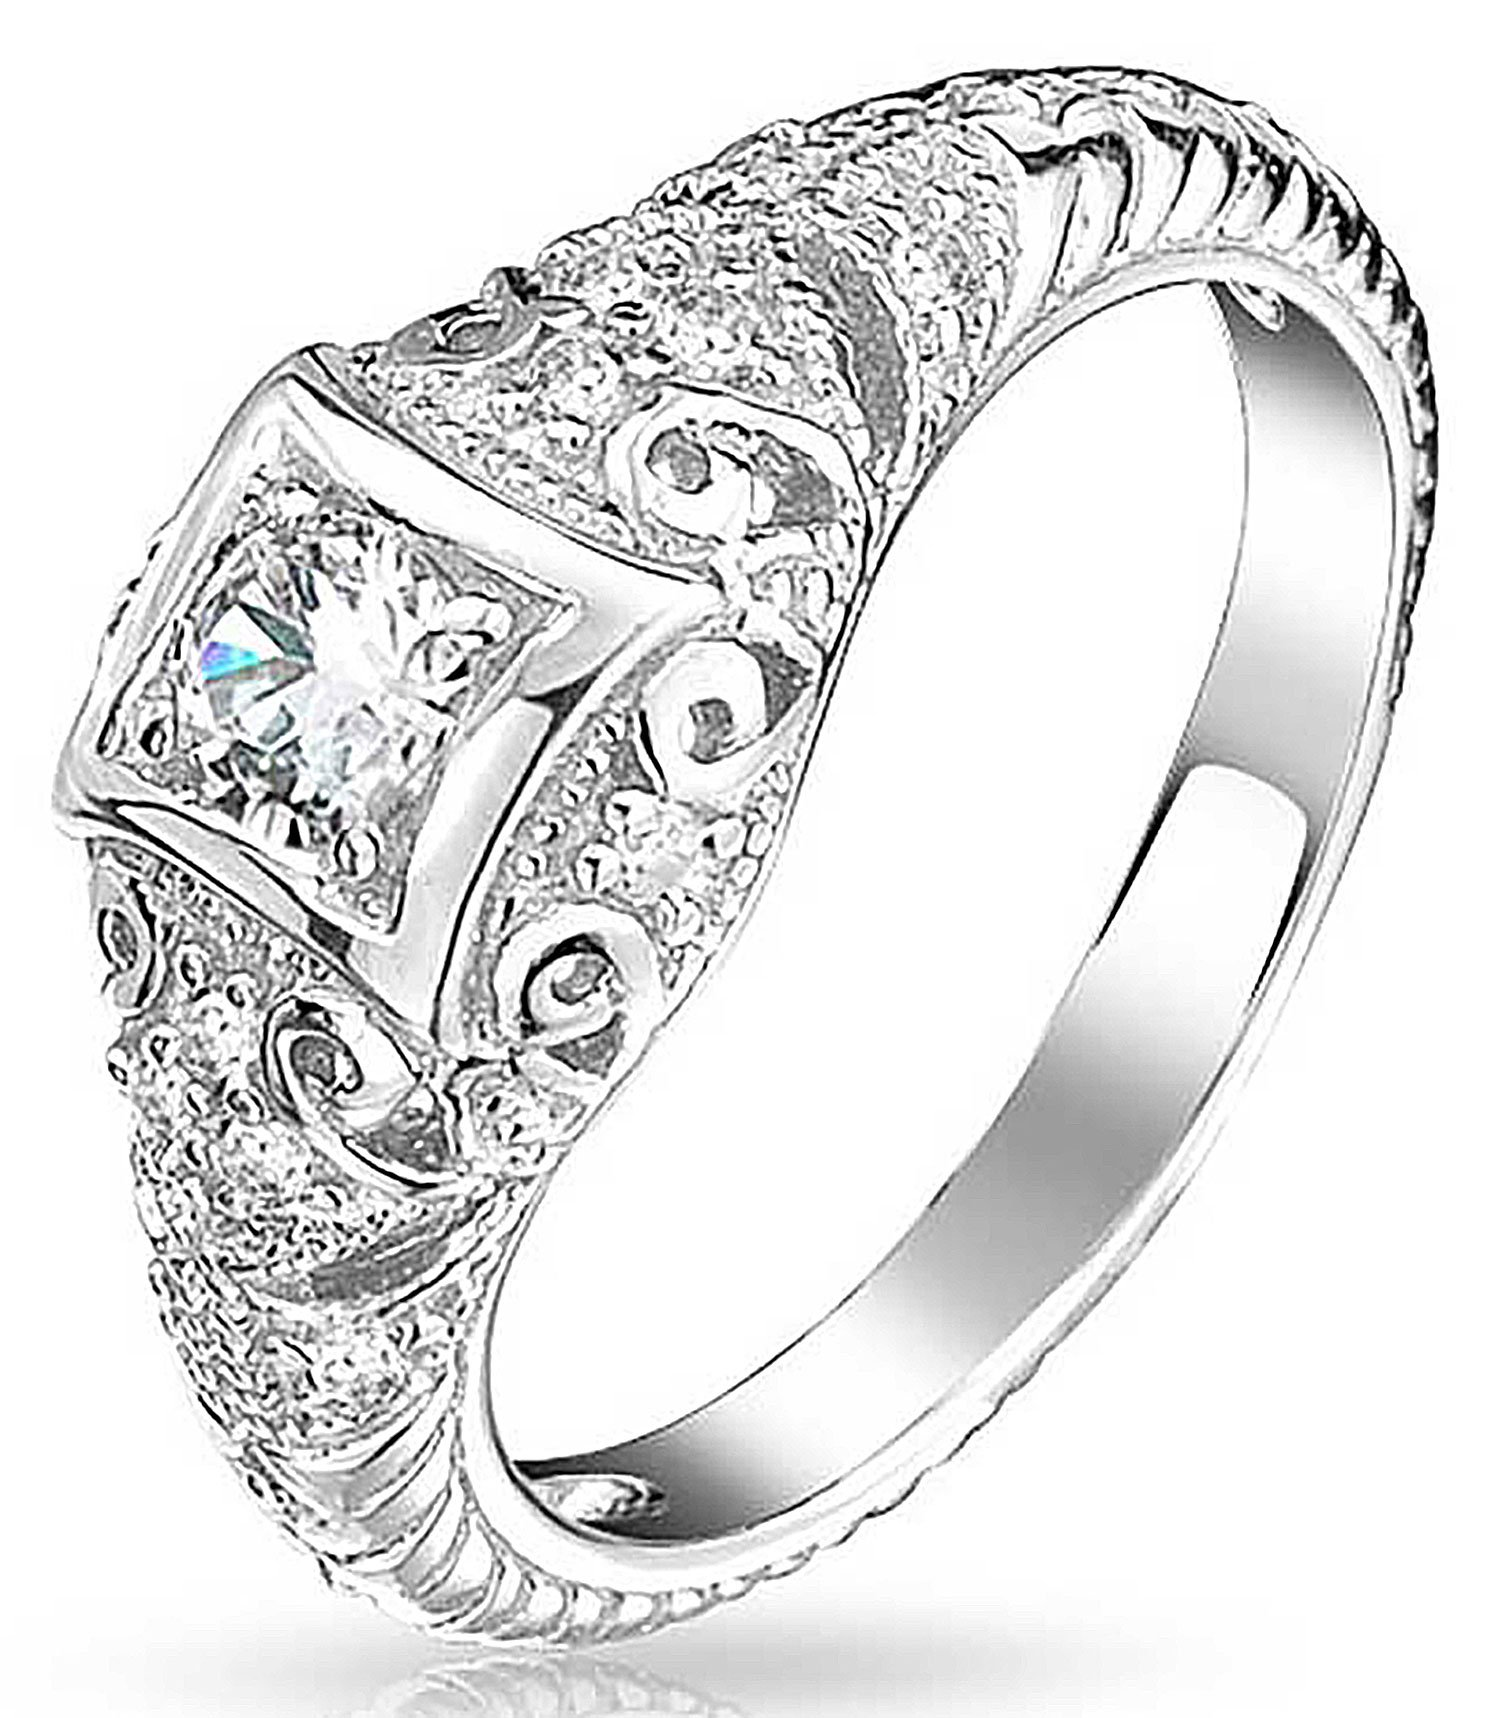 Bling Jewelry 925 Silver Art Deco Style CZ Solitaire Engagement Ring Vintage Style Milgrain Clear 8